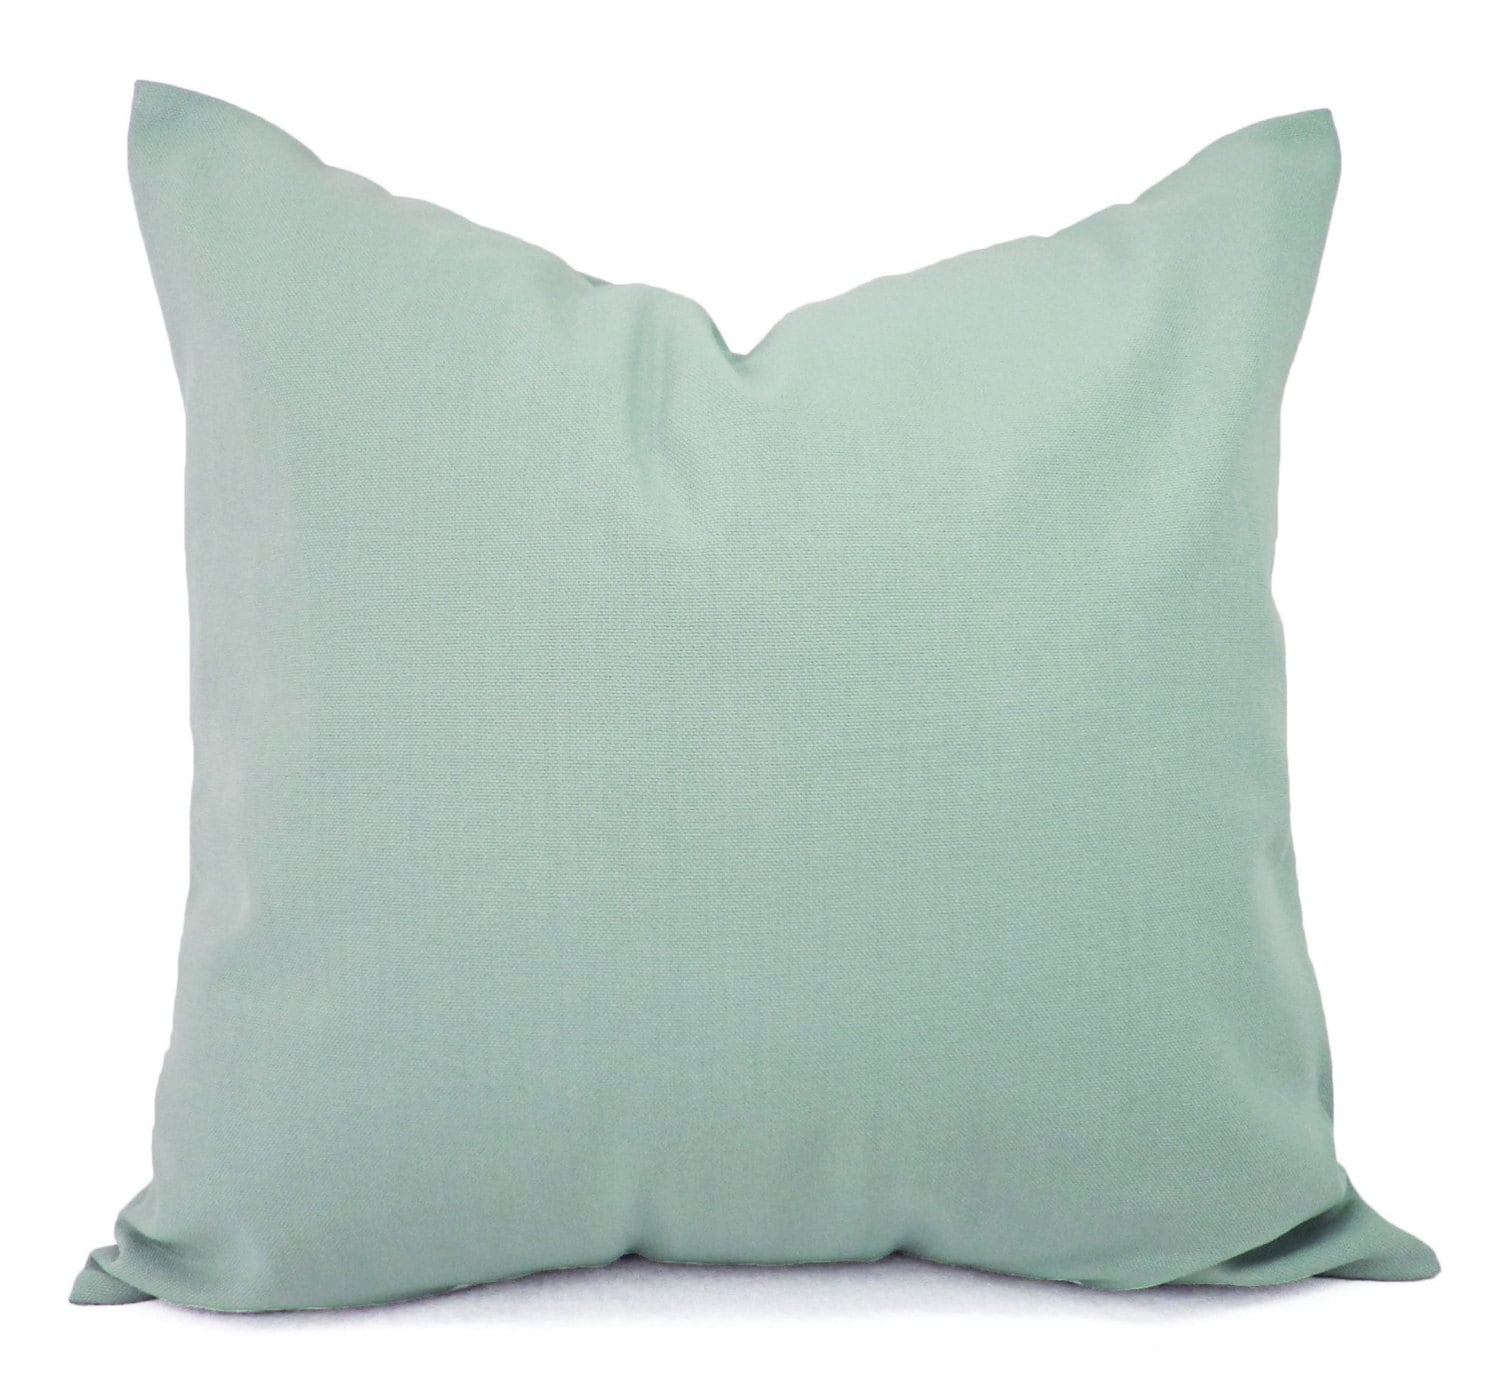 Decorative Pillows For Blue Couch : Two Solid Spa Blue Throw Pillow Covers Blue Couch Pillow